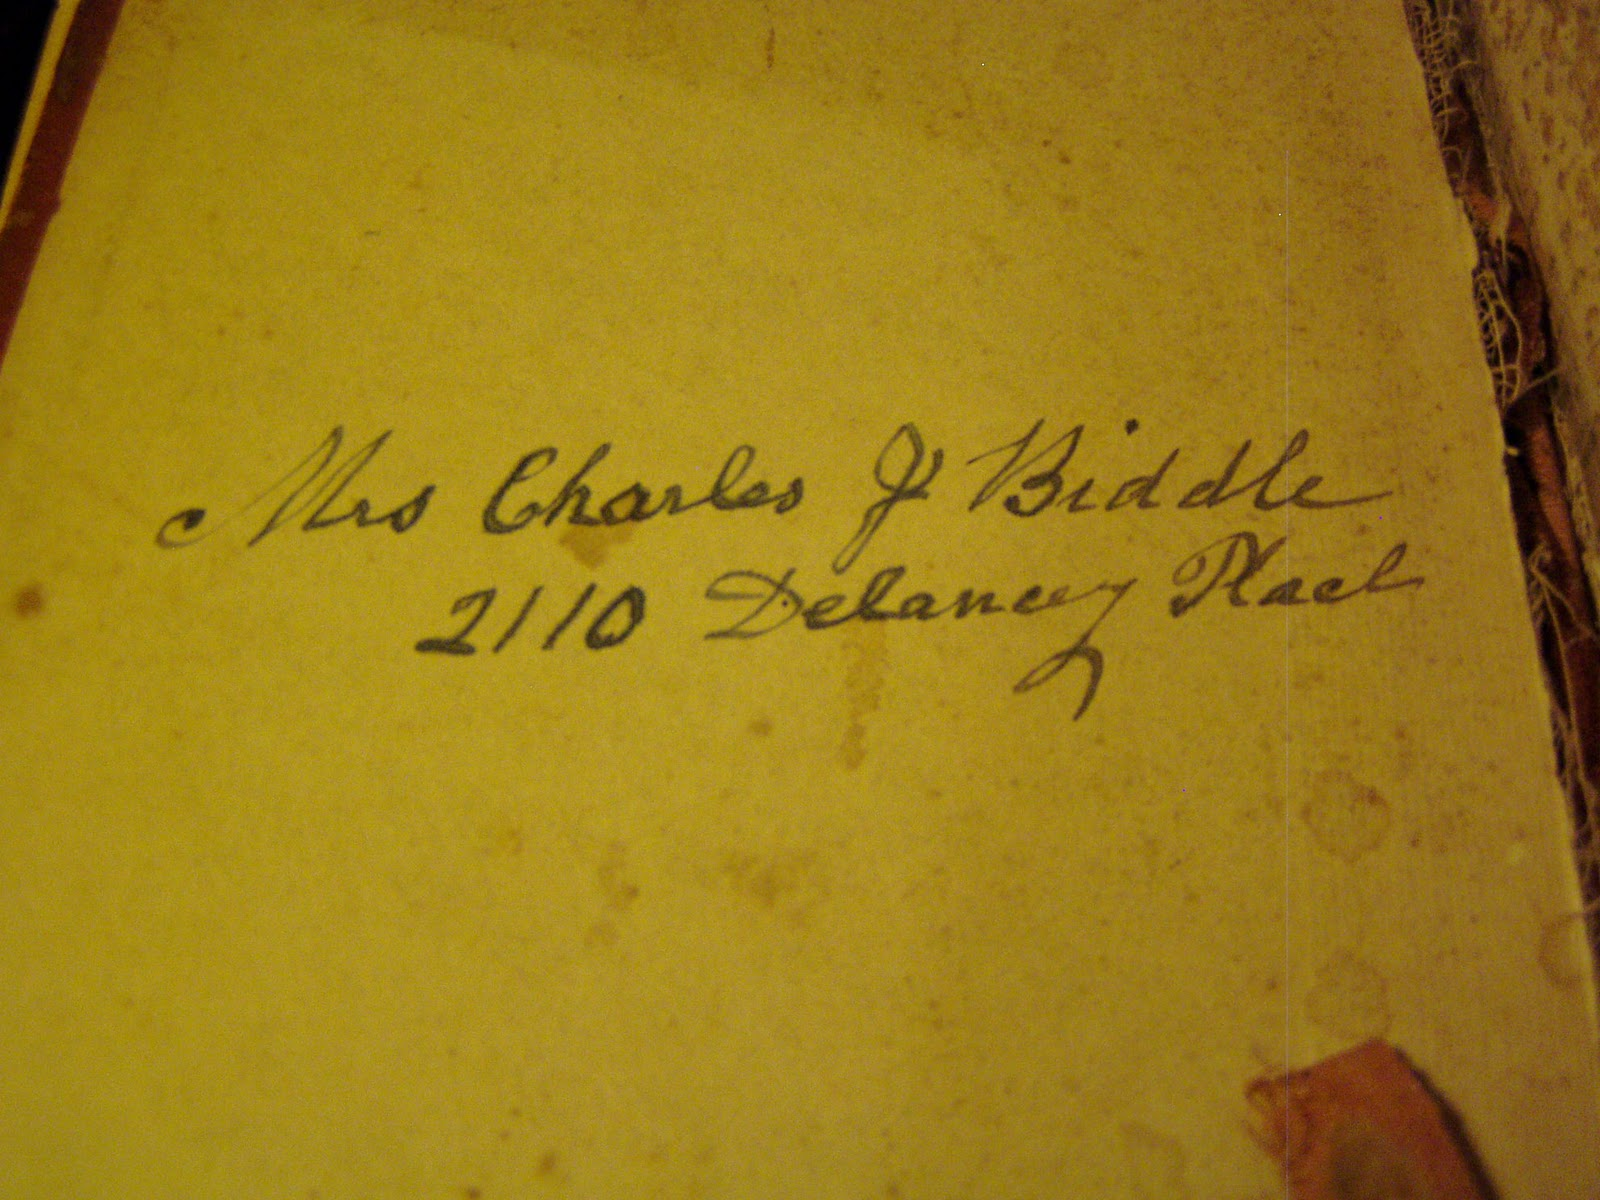 Mrs. Charles J Biddle 2110 Delancey Place. For certain this woman was